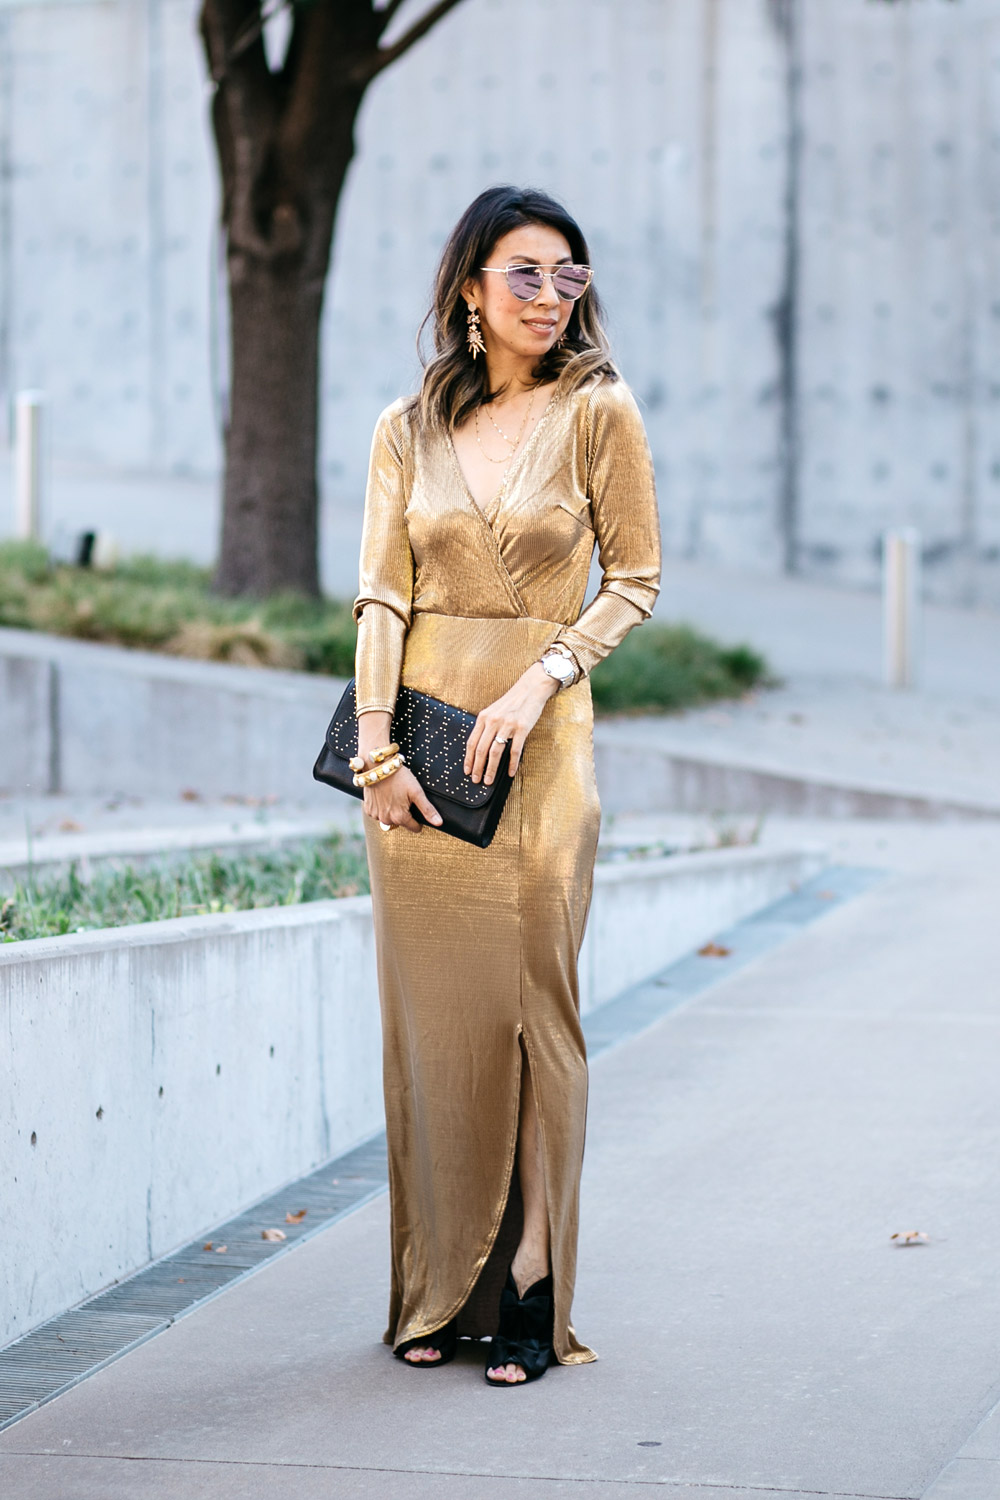 missguided gold wrap pleated dress with vera bradley black clutch and chanel peep-toe booties